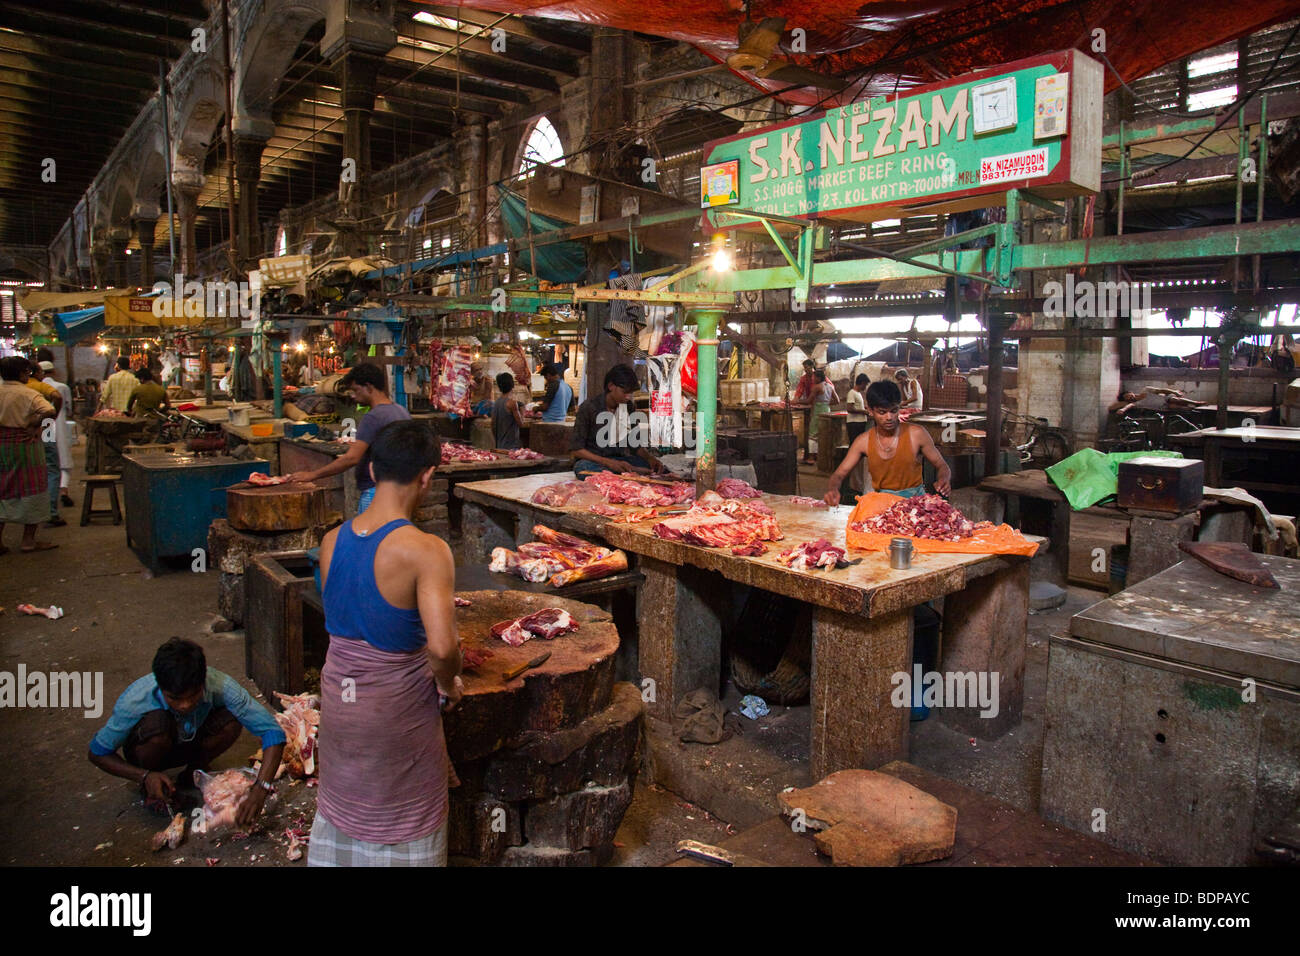 meat market stock images - photo #24